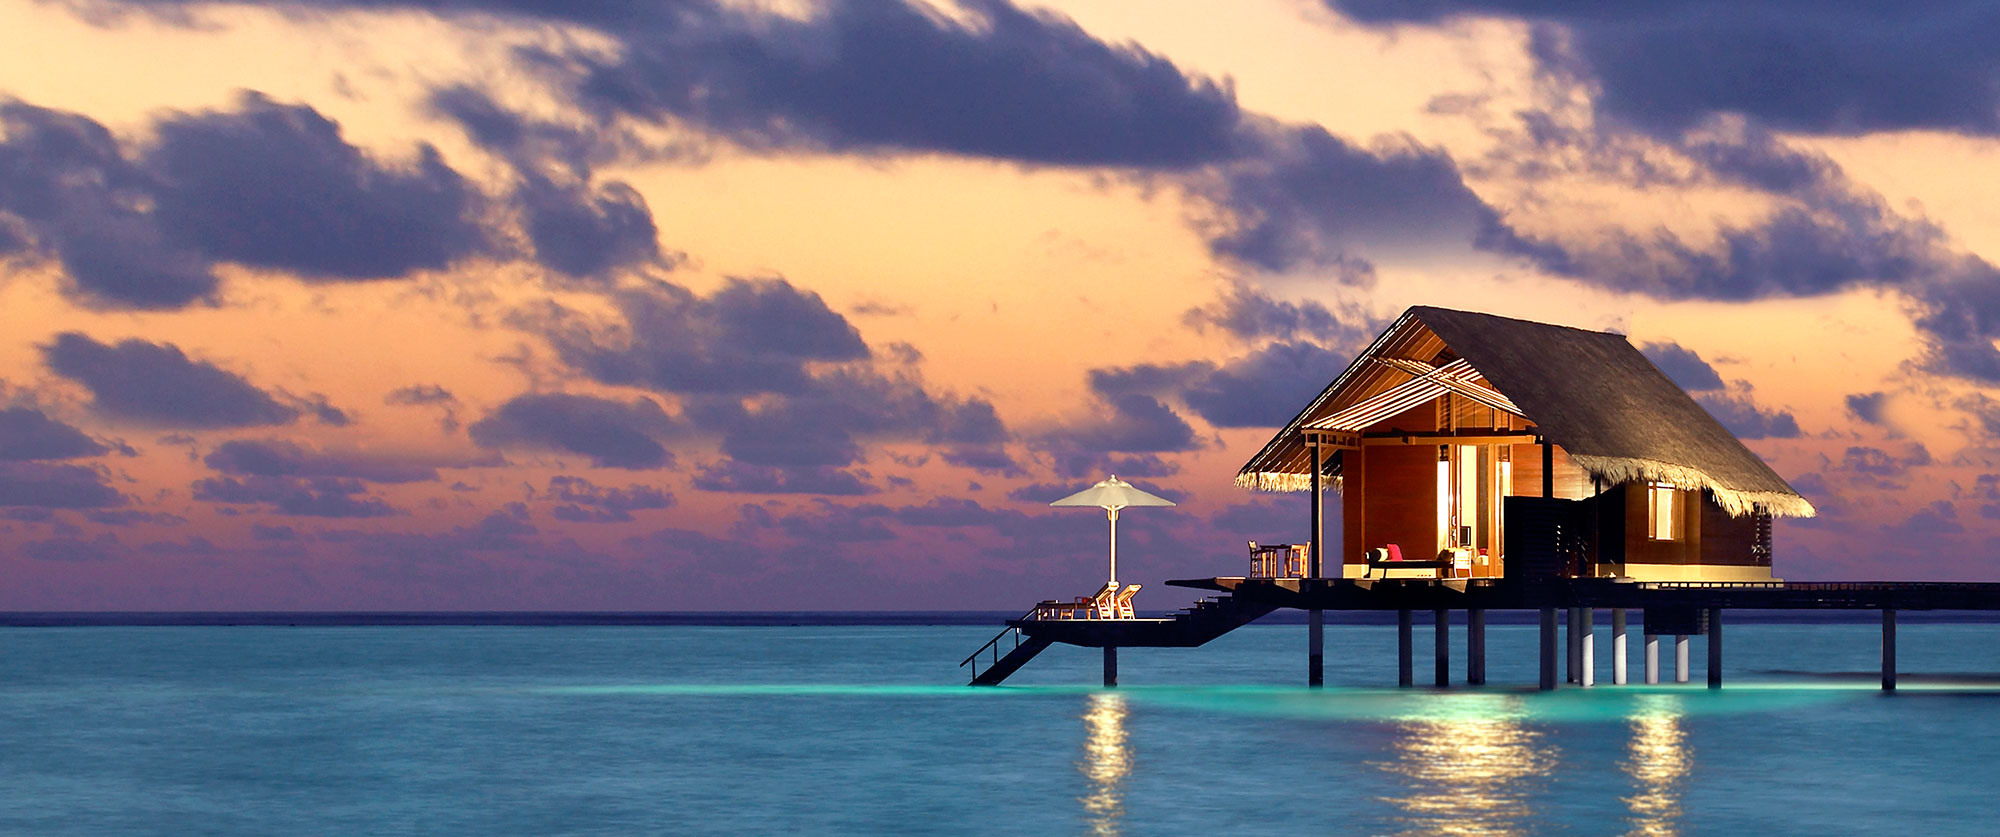 ... Packages - Maldives Vacations - Maldives - Beaches Best Beaches